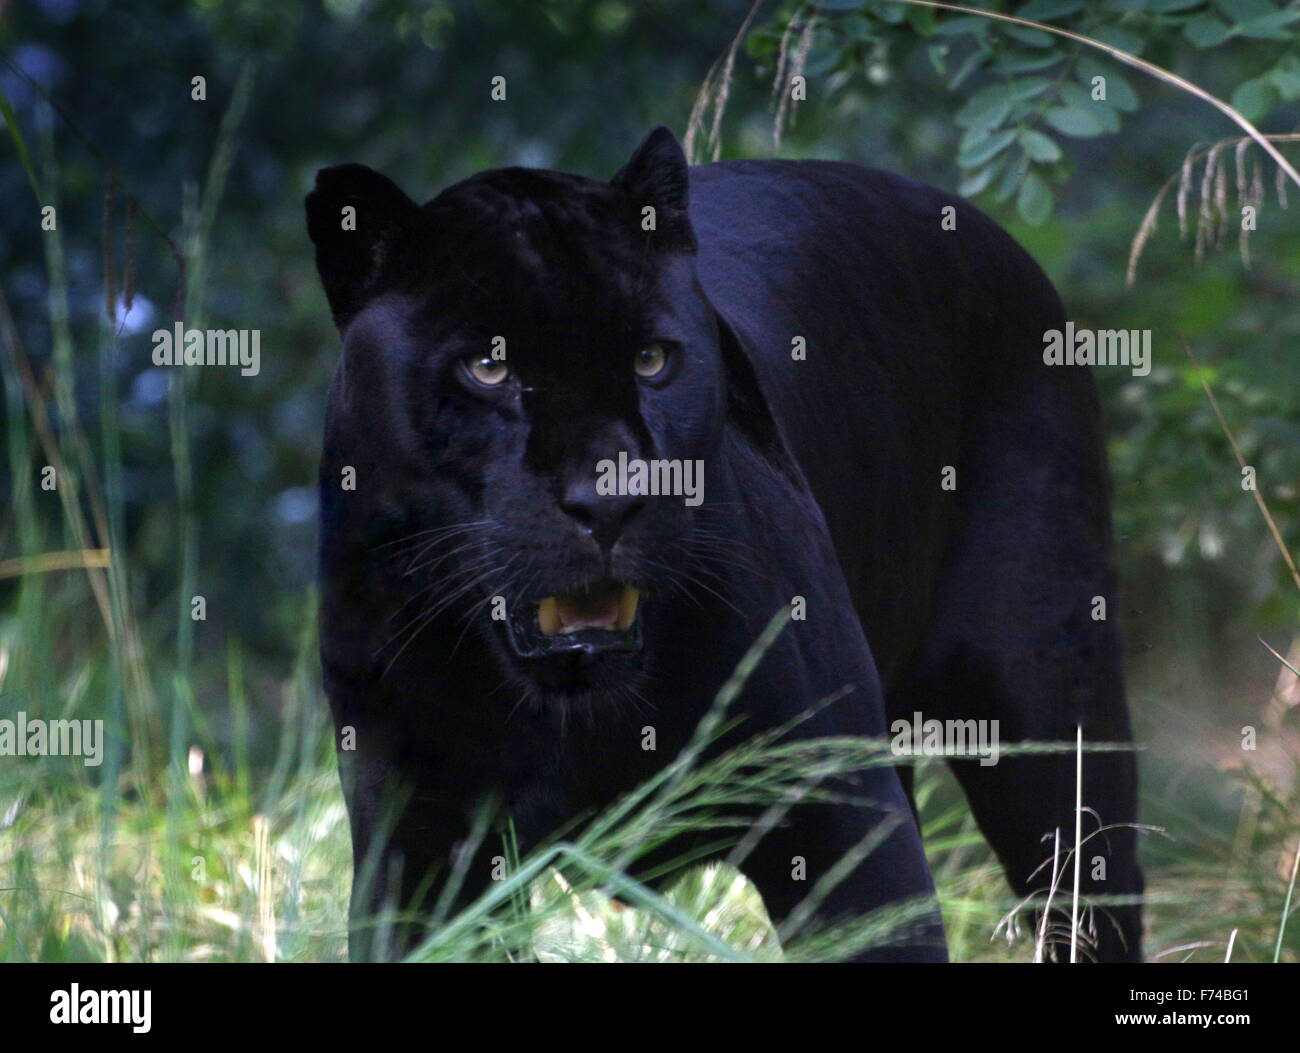 Male South American Black Jaguar (Panthera onca) on the prowl - Stock Image